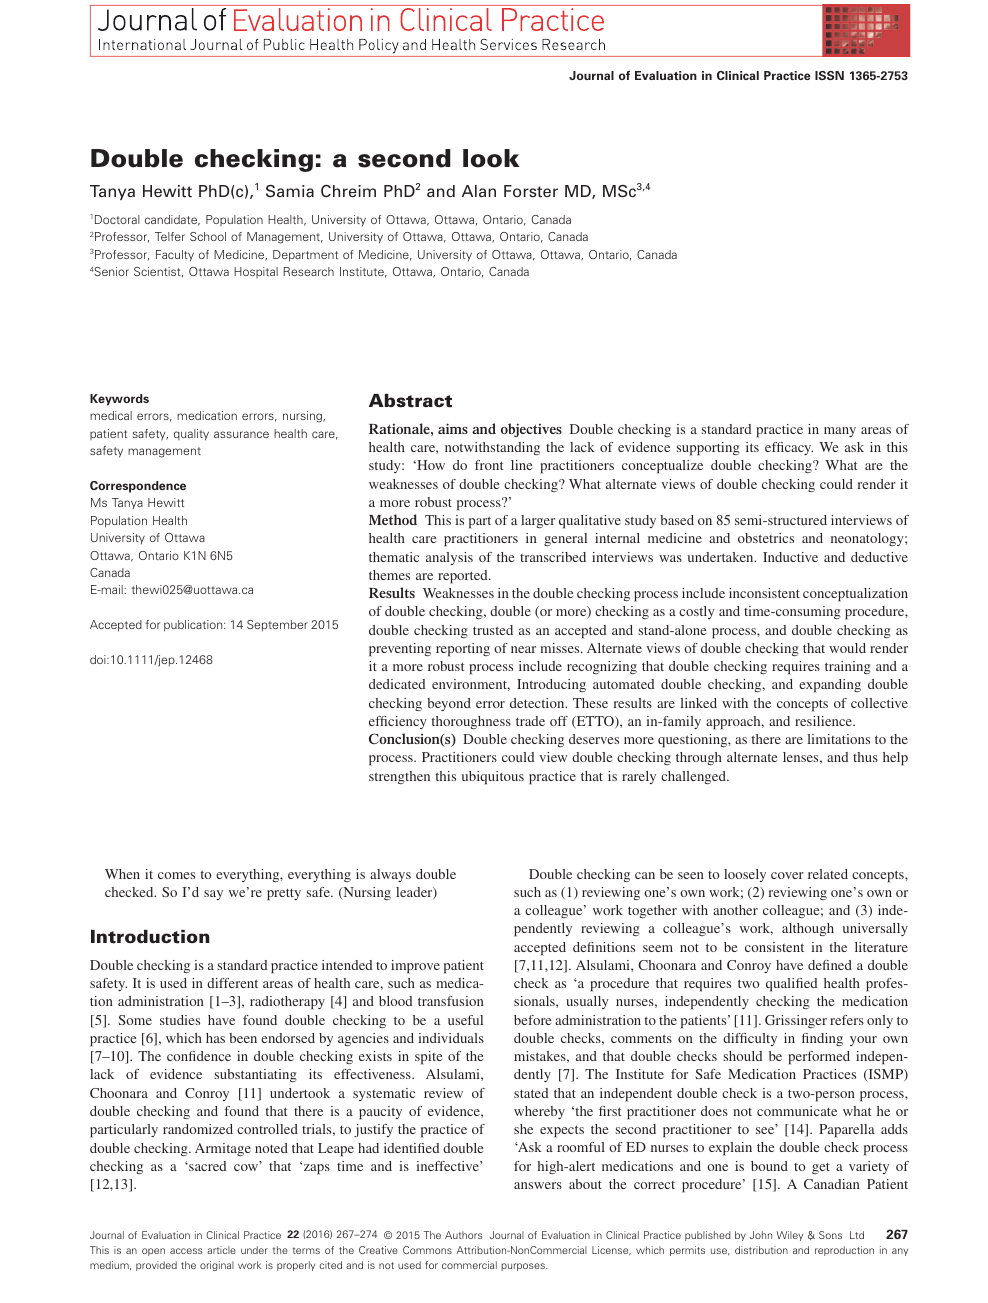 Double checking: a second look – topic of research paper in